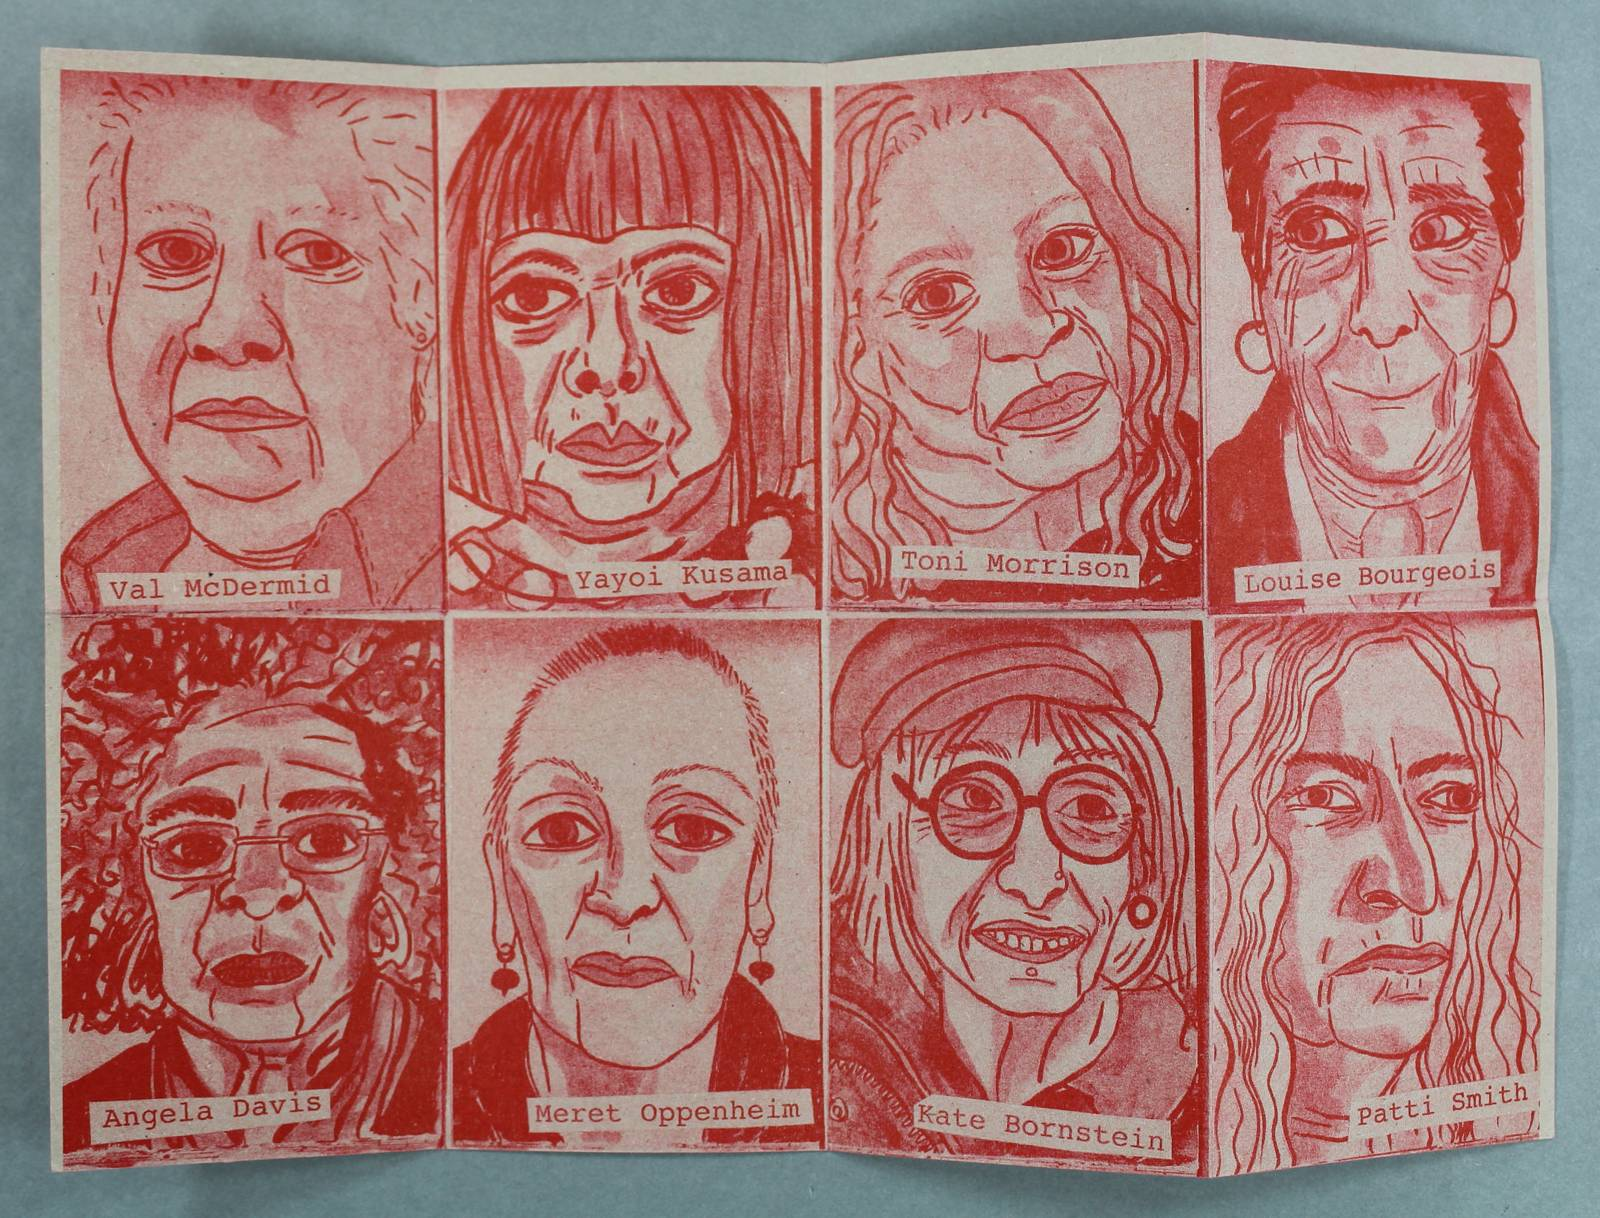 Crones zine by Rachael House, 2016. This zine celebrates older women working in creative roles and challenges negative images of female ageing.